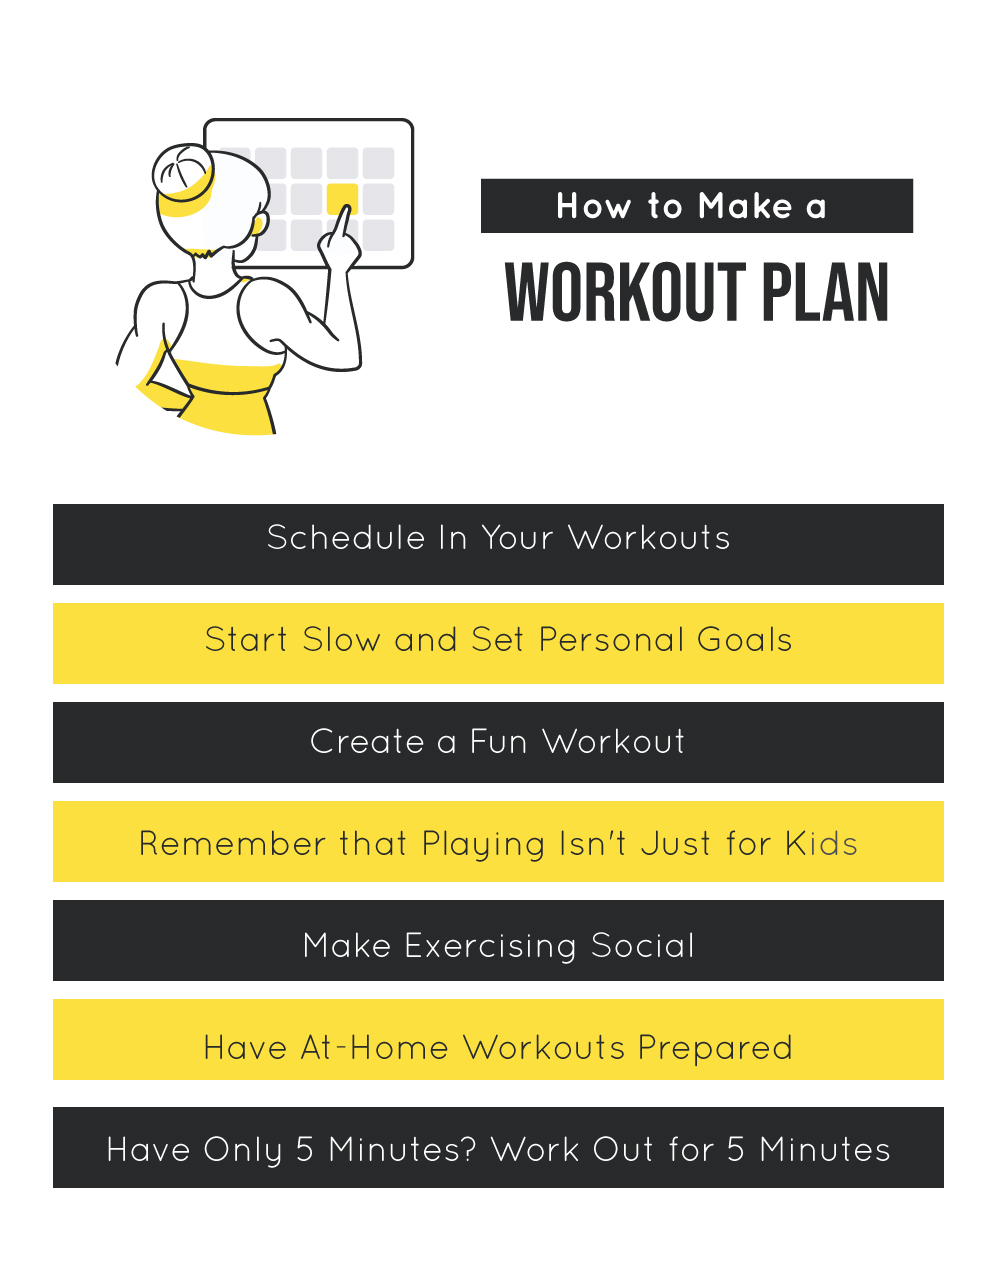 How to Make a Workout Plan